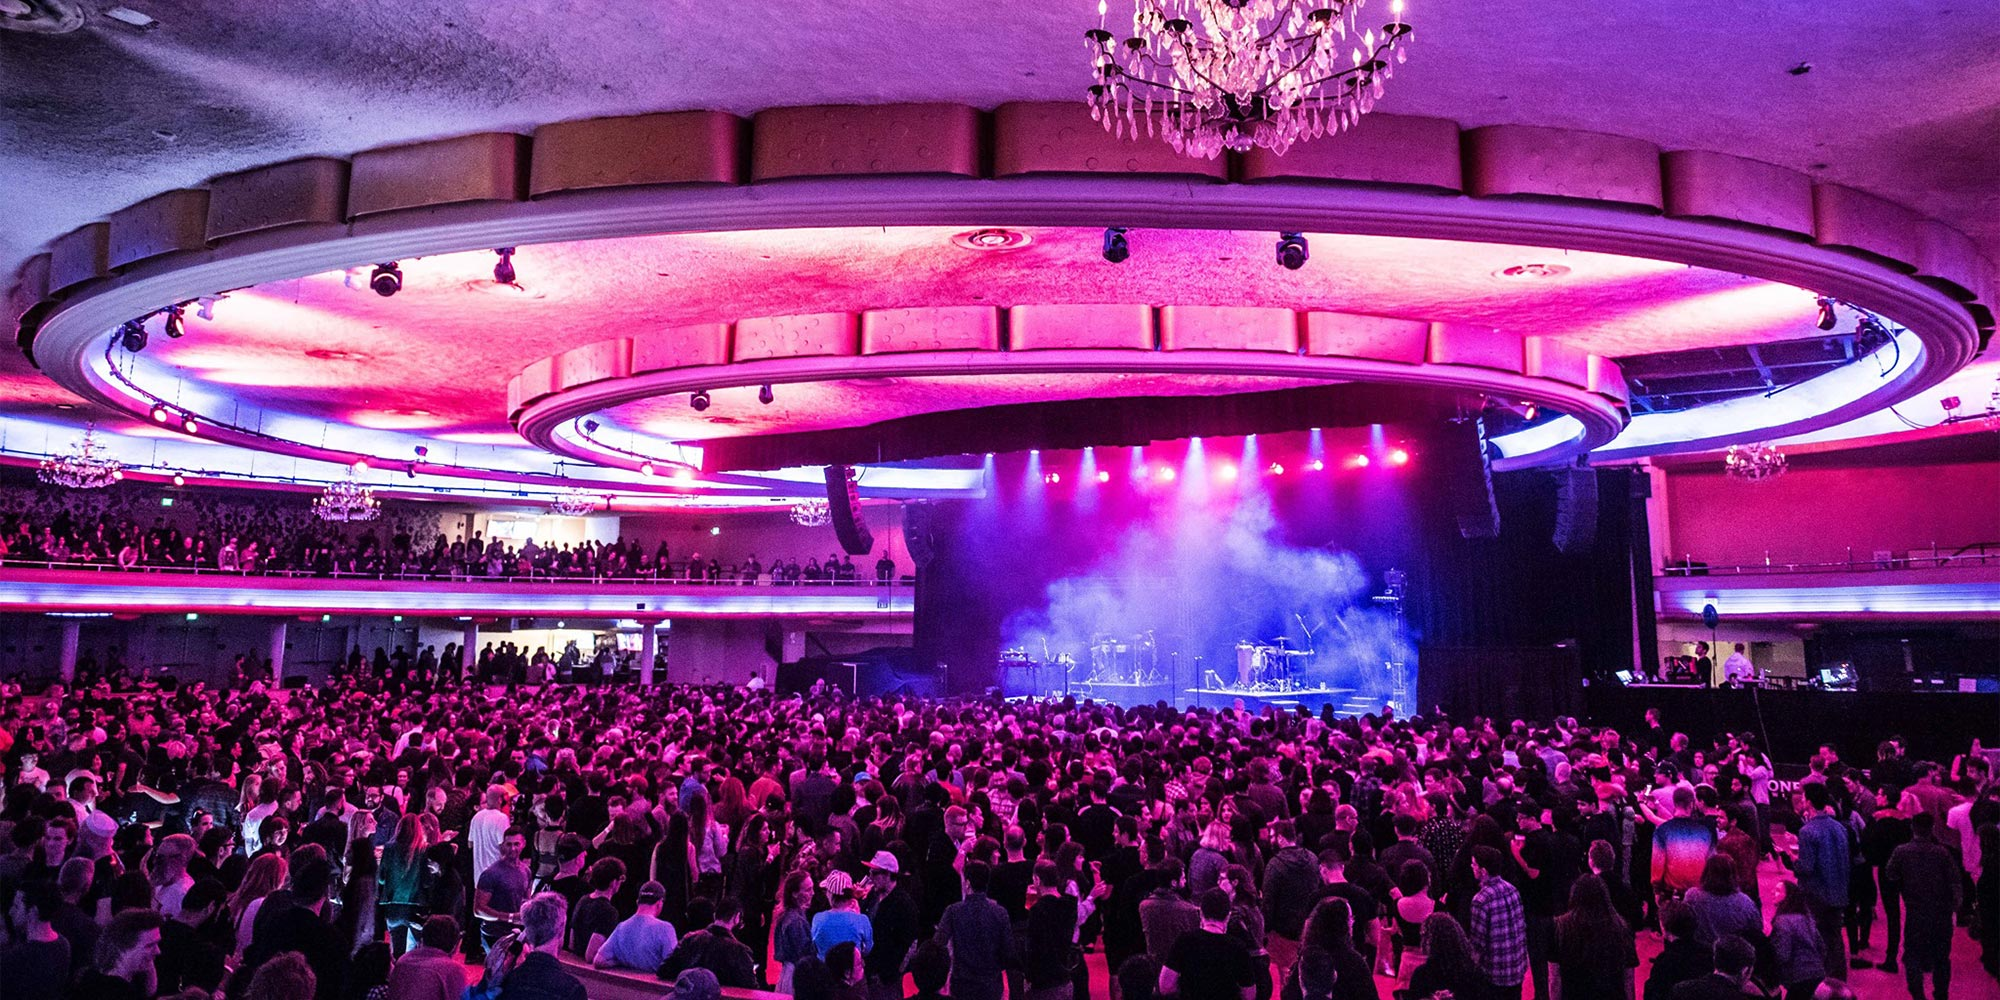 Hollywood Palladium for live music in Los Angeles, California.